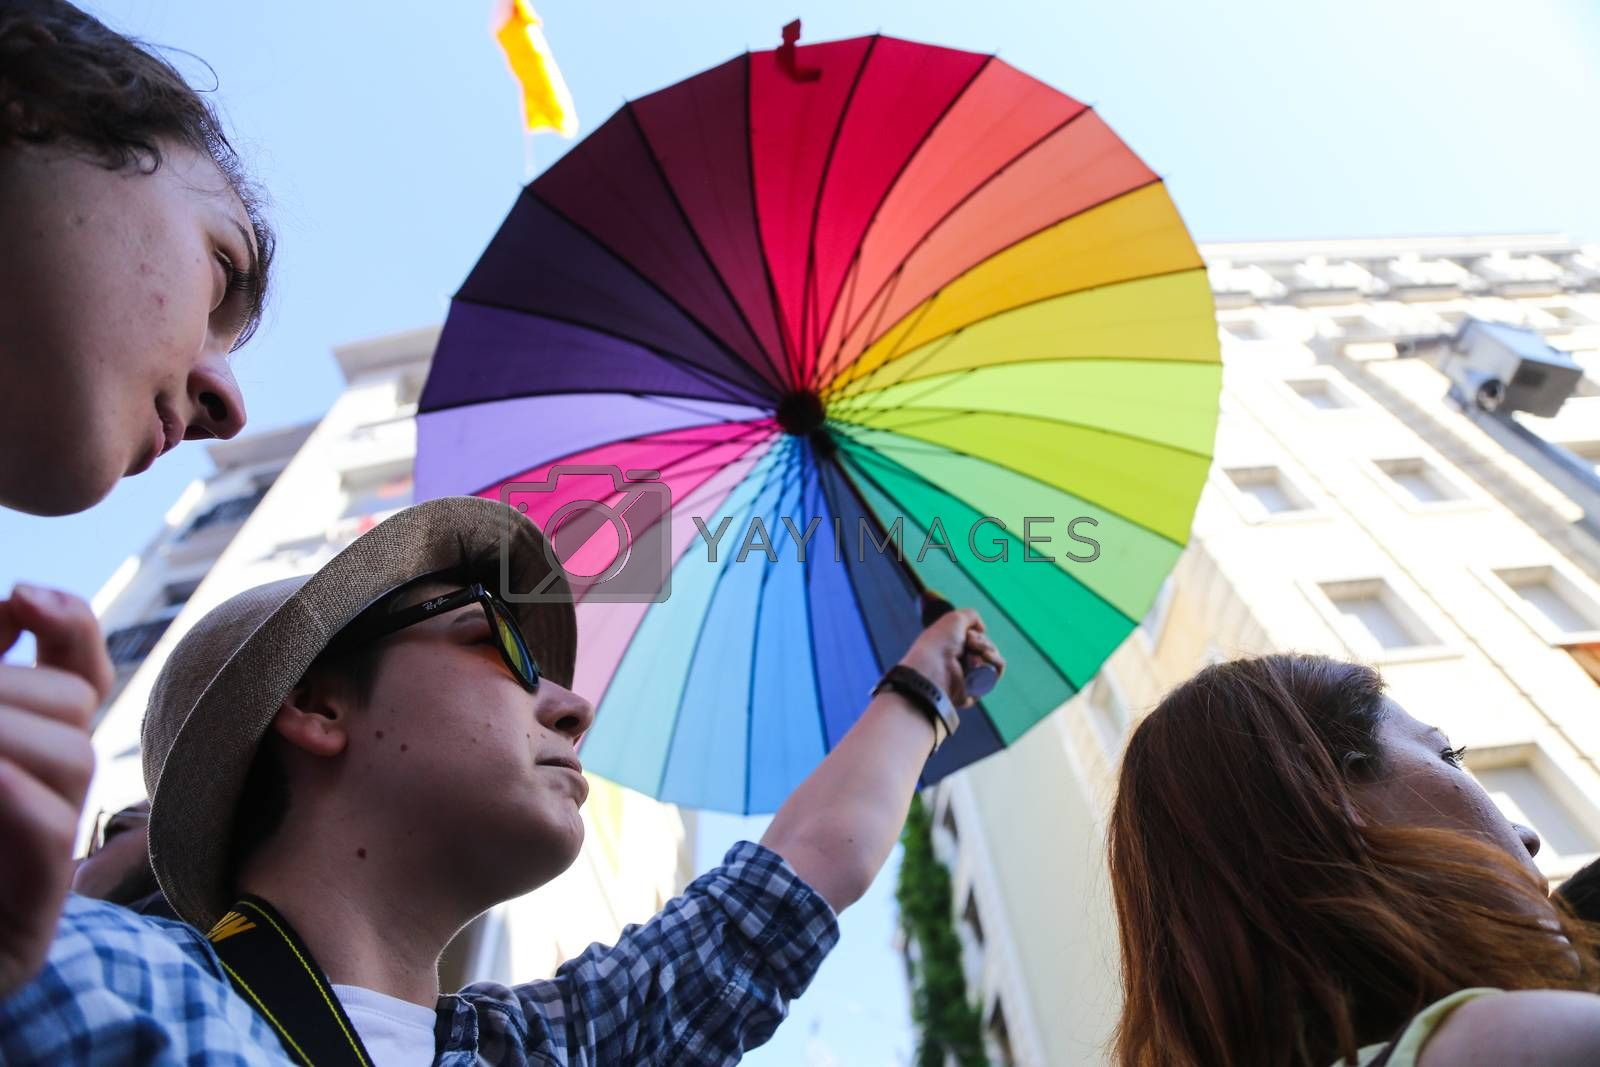 ISTANBUL, TURKEY - JUNE 21, 2015: Man with LGBT umbrella during Istanbul Trans Pride March in Istiklal Avenue at the beginning of Istanbul LGBT Pride Week.